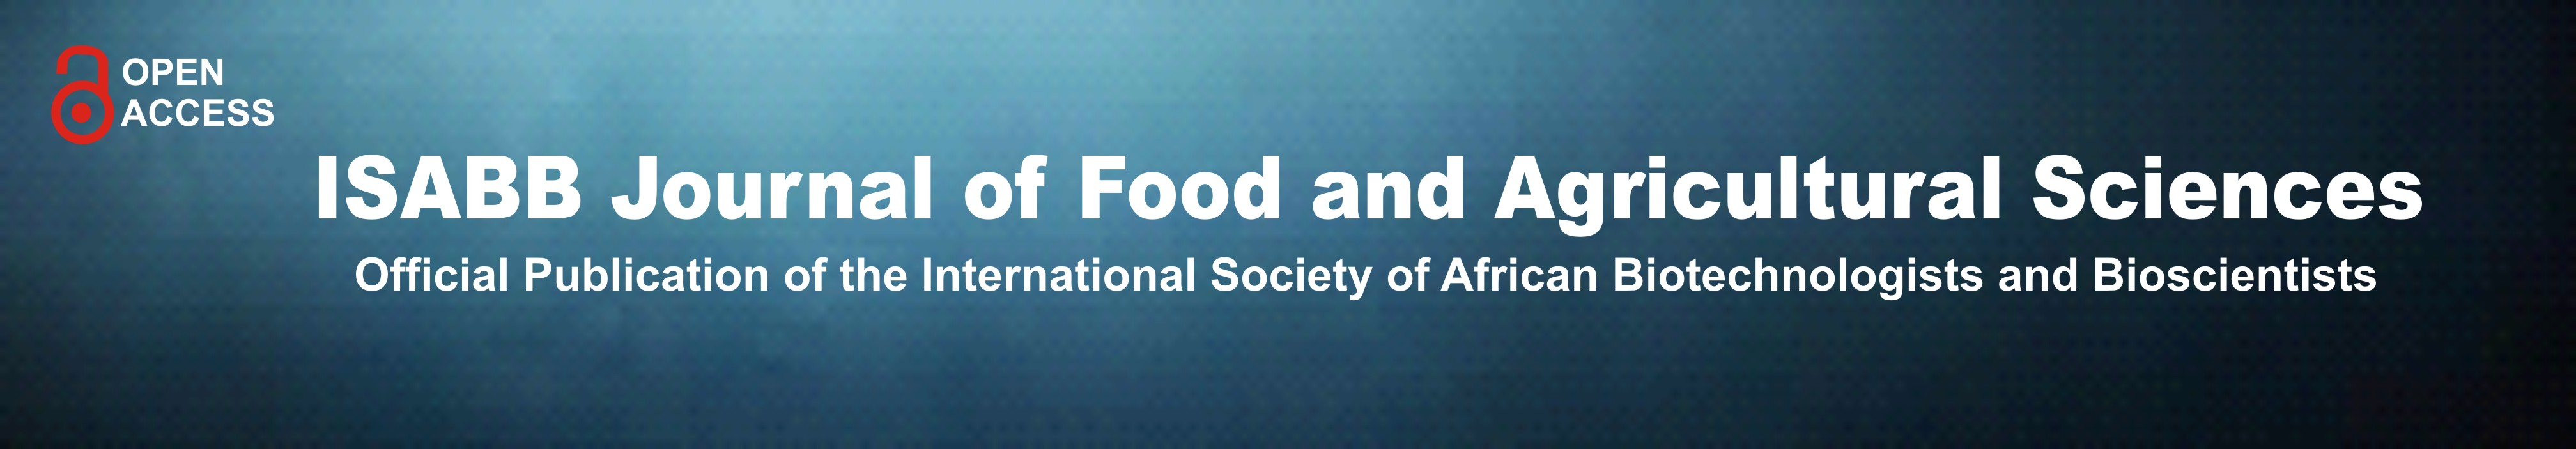 ISABB Journal of Food and Agricultural Sciences